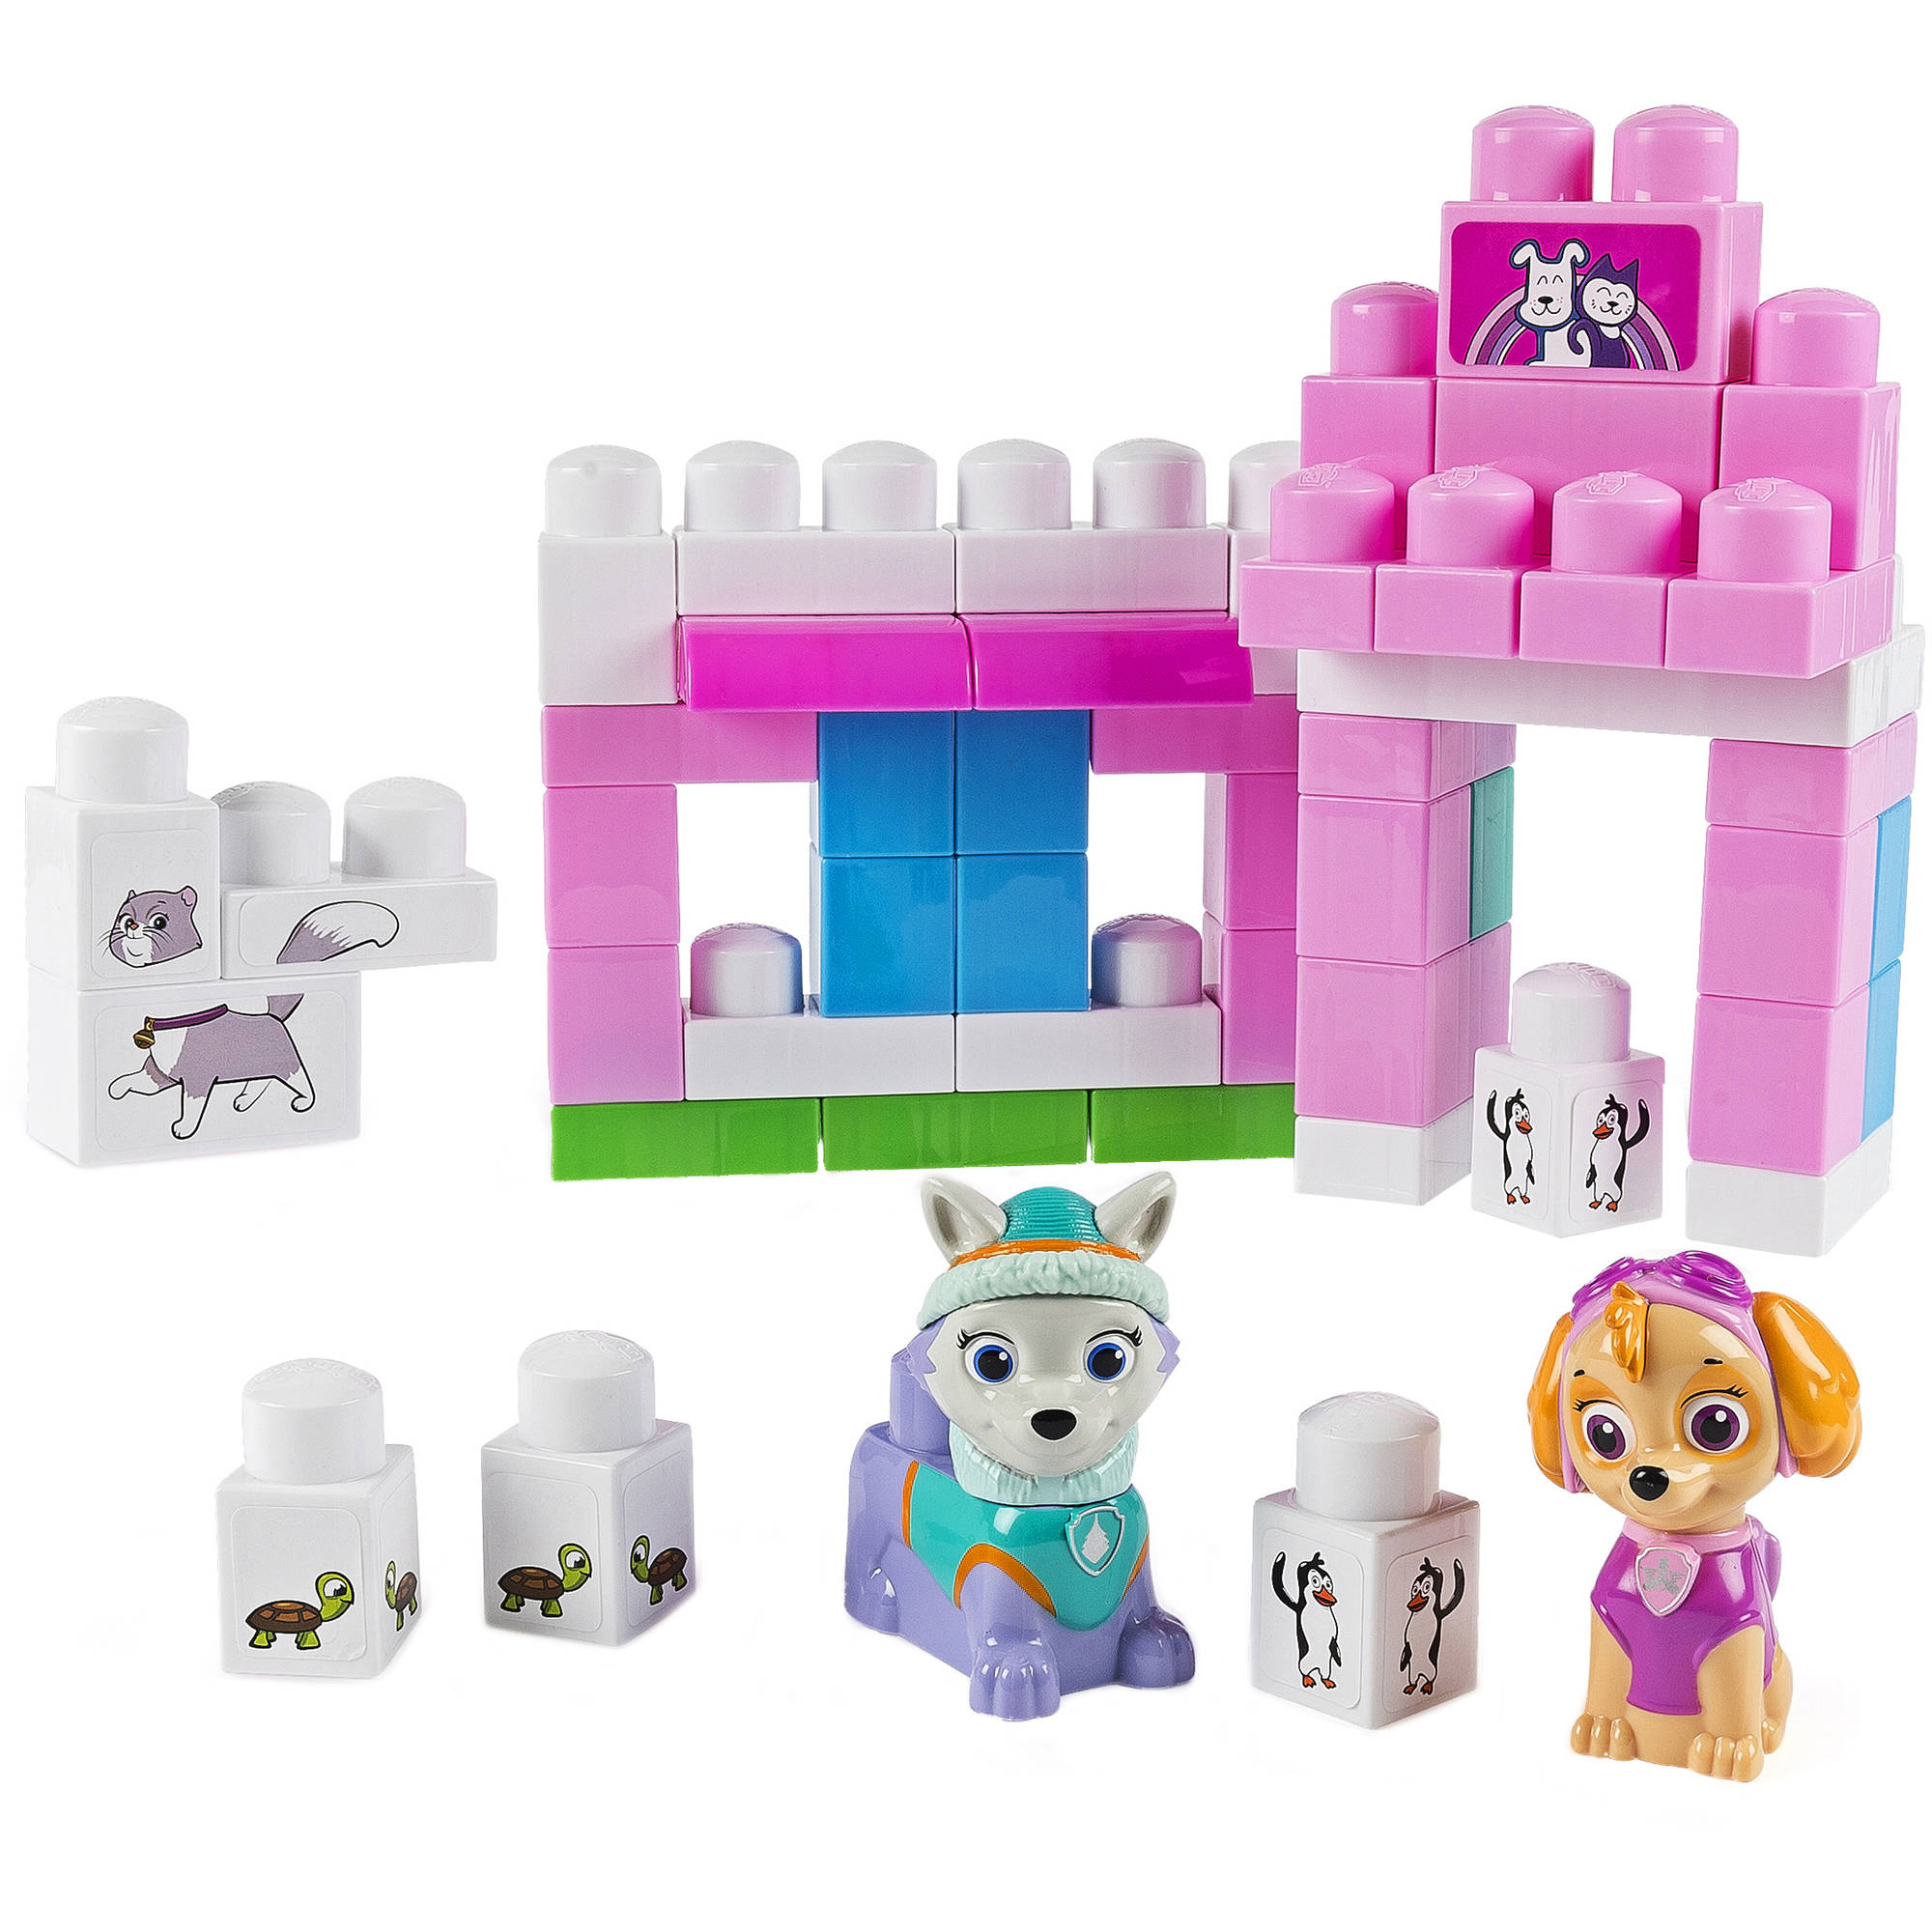 IONIX Jr. Paw Patrol Katie's Pet Parlor Block Set, Skye and Everest by Spin Master Ltd